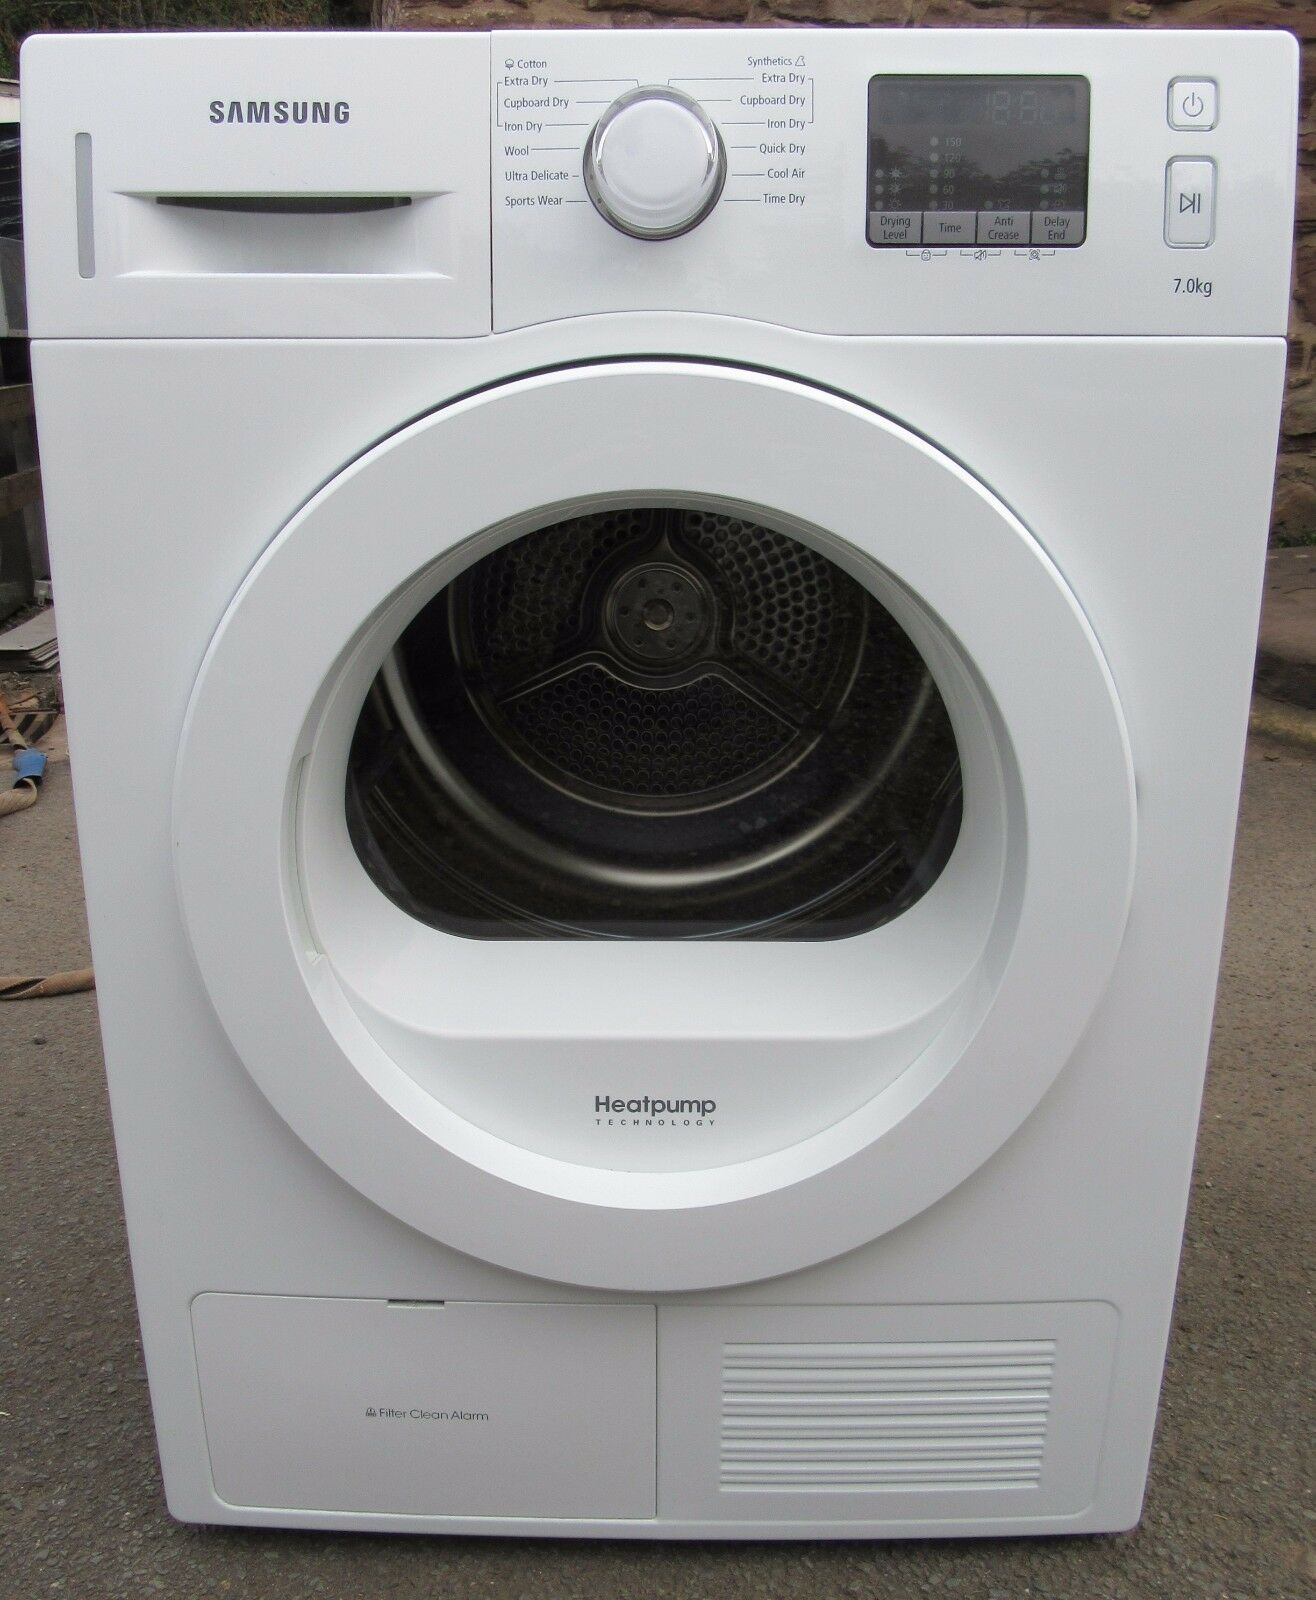 SAMSUNG DV70F5EOHGW, 7kg A++ ENERGY HEAT PUMP dryer, 12M warranty!* RRP £629 *5